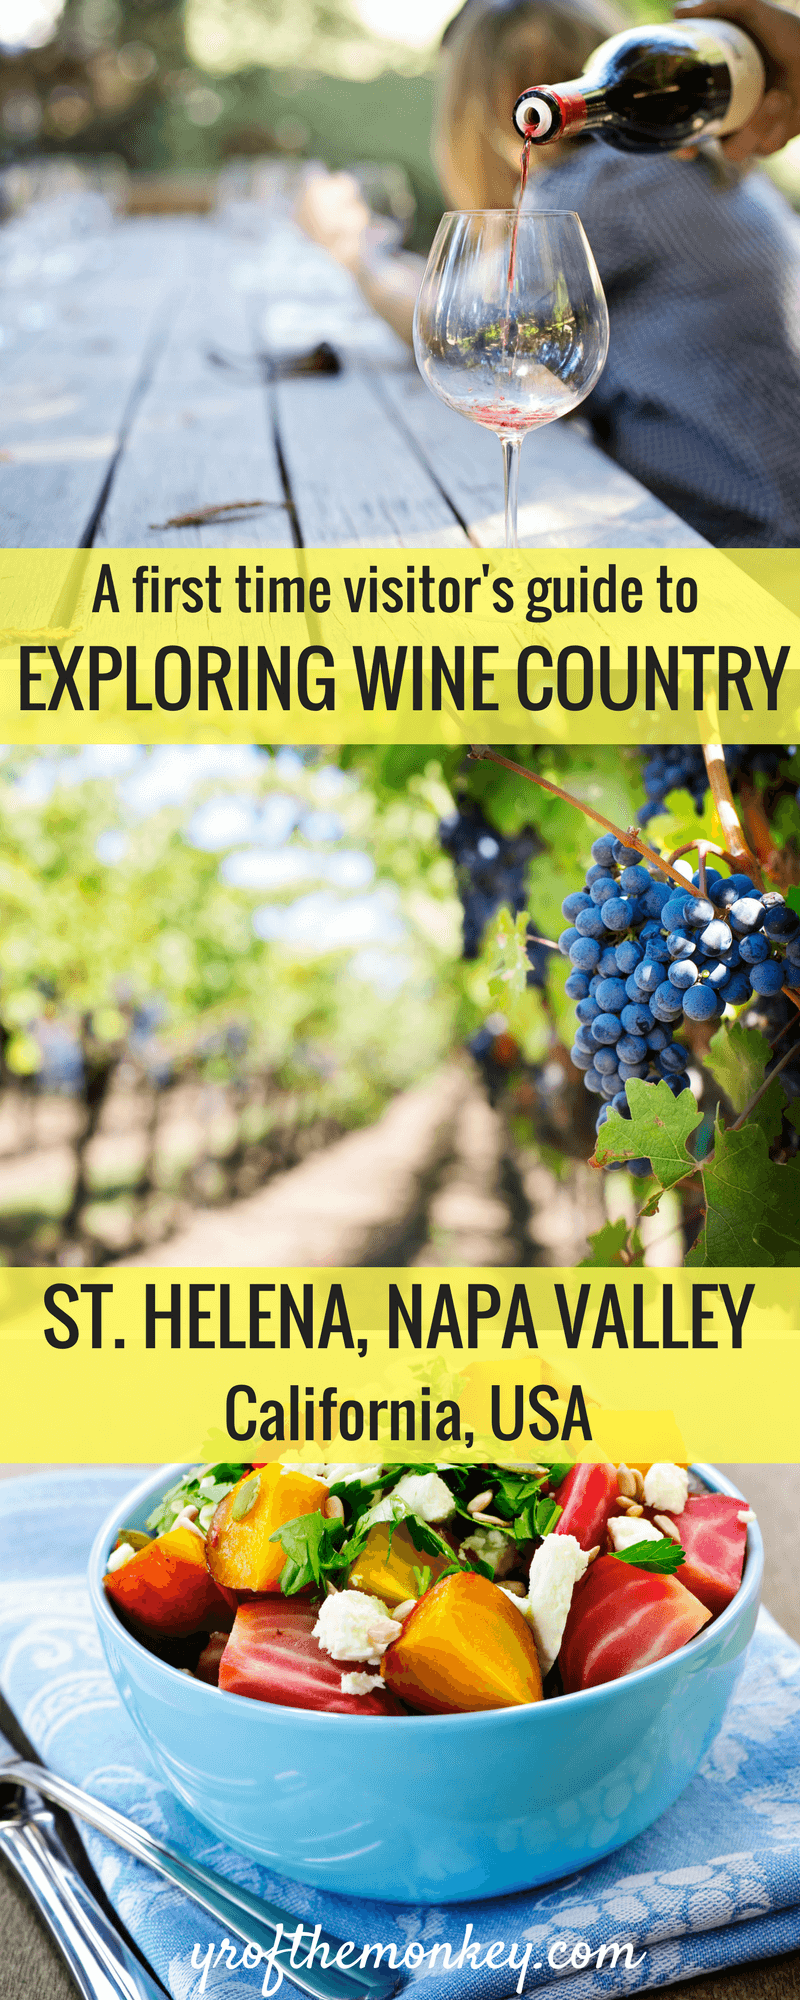 Napa Valley weekend trip: Your guide to St. Helena, Napa, California, USA and tips for dining and wine tasting for the perfect Napa valley itinerary. A handy guide for wine lovers and first time visitors, pin this to your California board for reference. Napa Valley vacation | Napa Valley tour| California travel| Napa valley wine tasting| Napa valley guide| #california #napavalley #wineries #winetasting